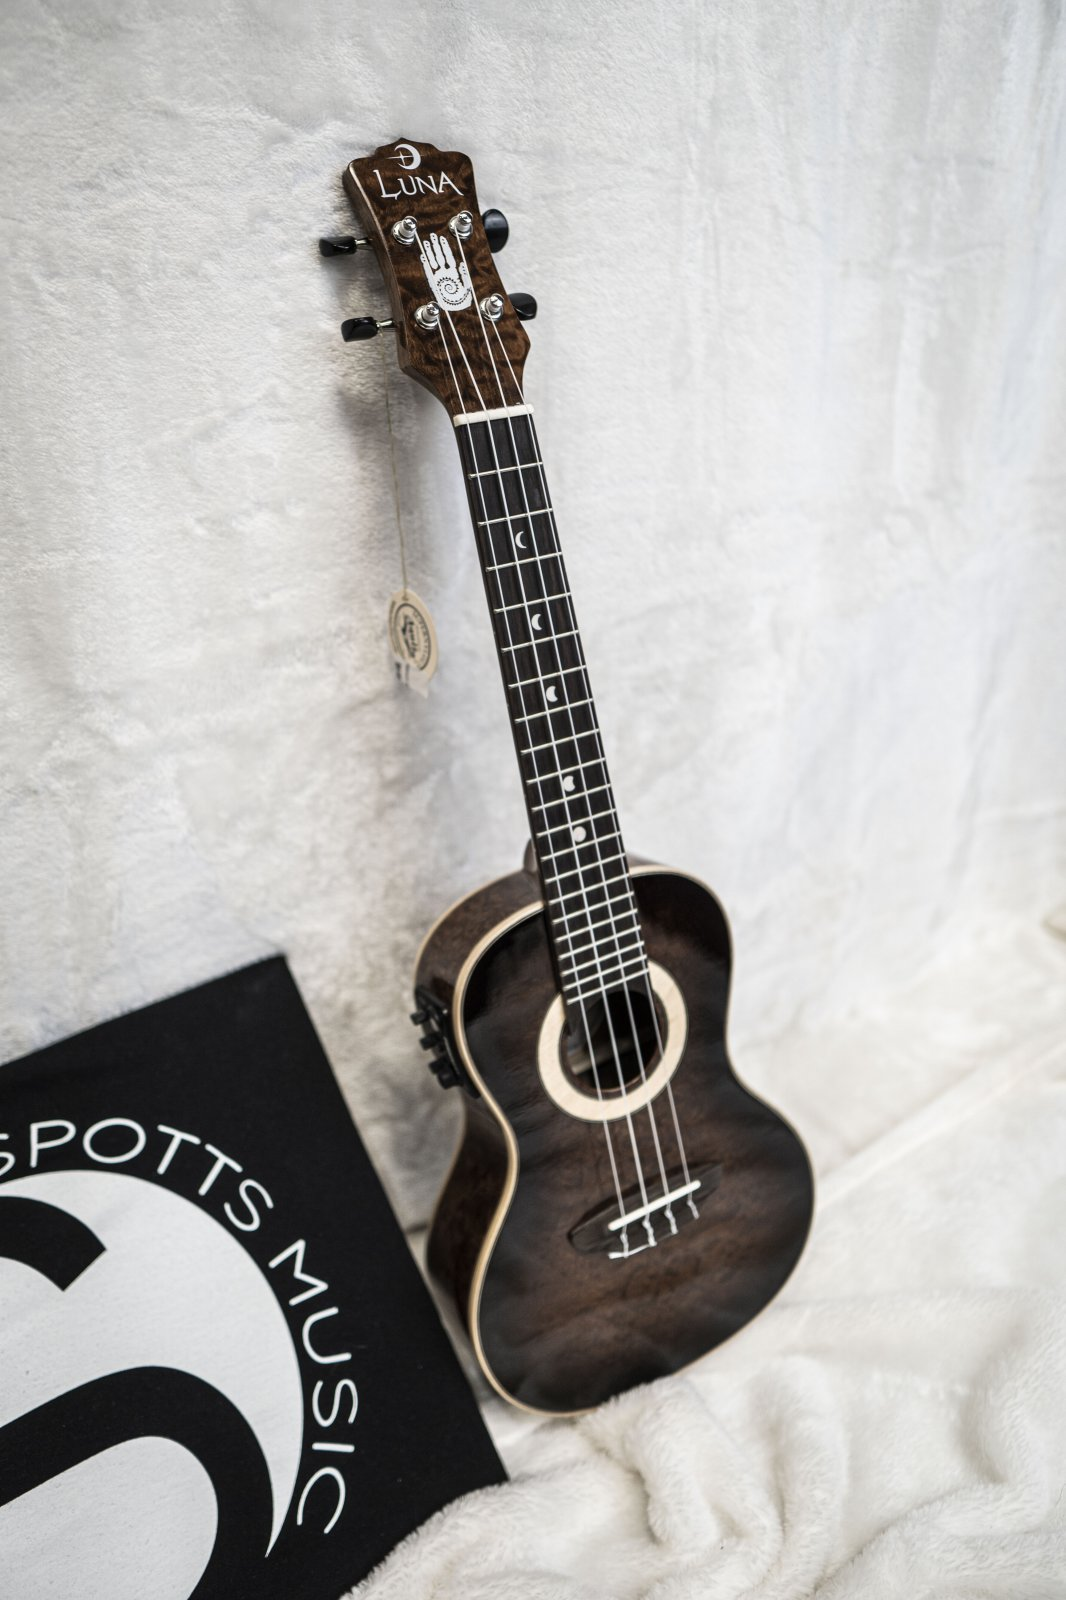 Luna Uke 15th Anniversary Limited Concert w/ Preamp and Case